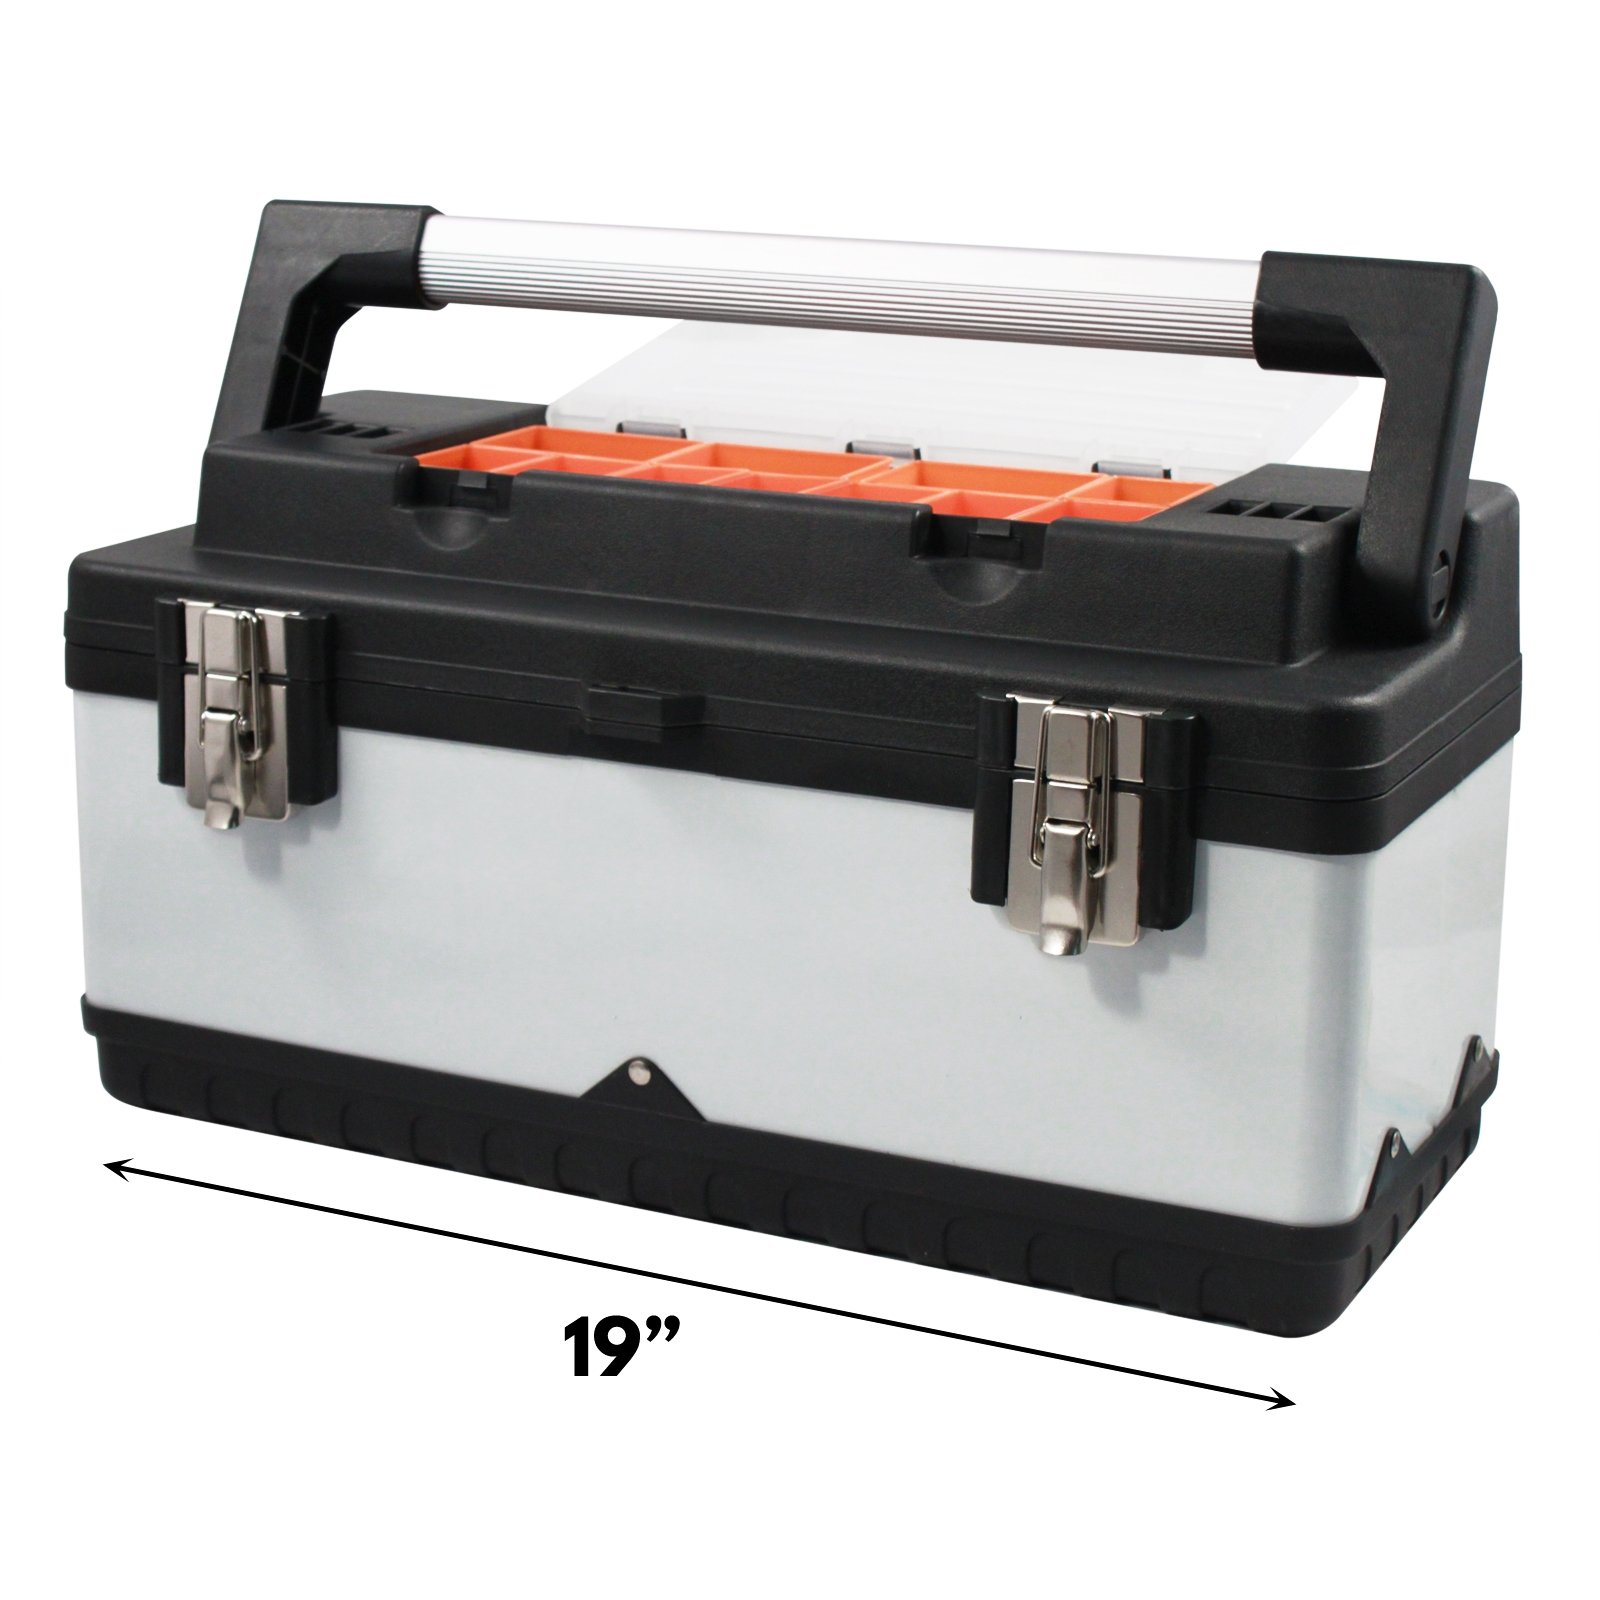 Universal Utility Tool Box Steel and Plastic Lift Out Tray 11 Storage Containers